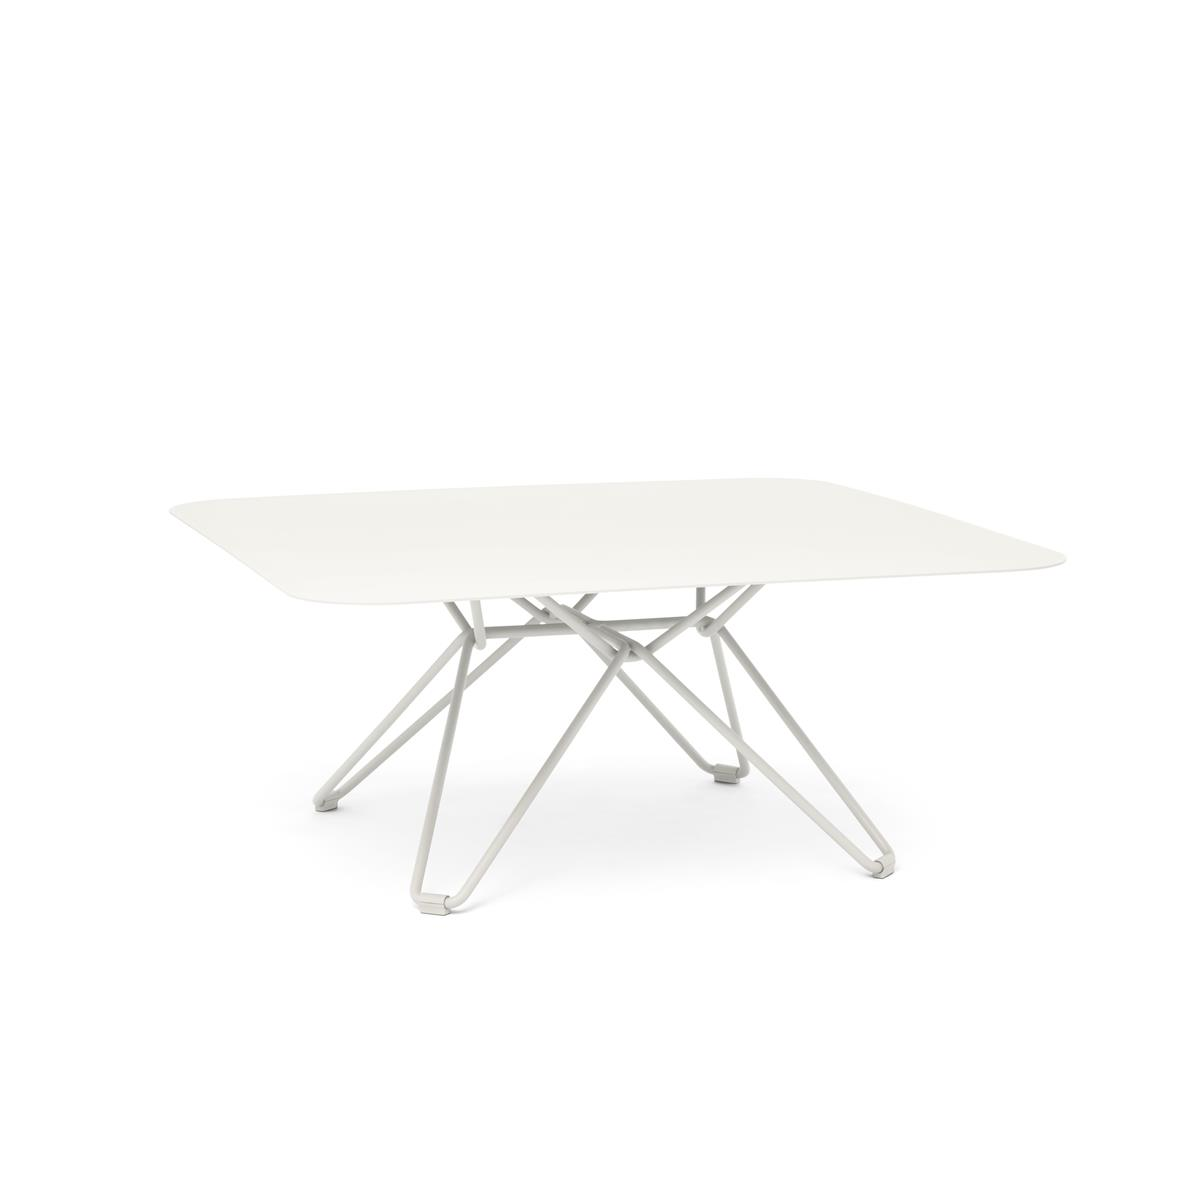 Tio Coffe Table 85x85 x H38 cm - White